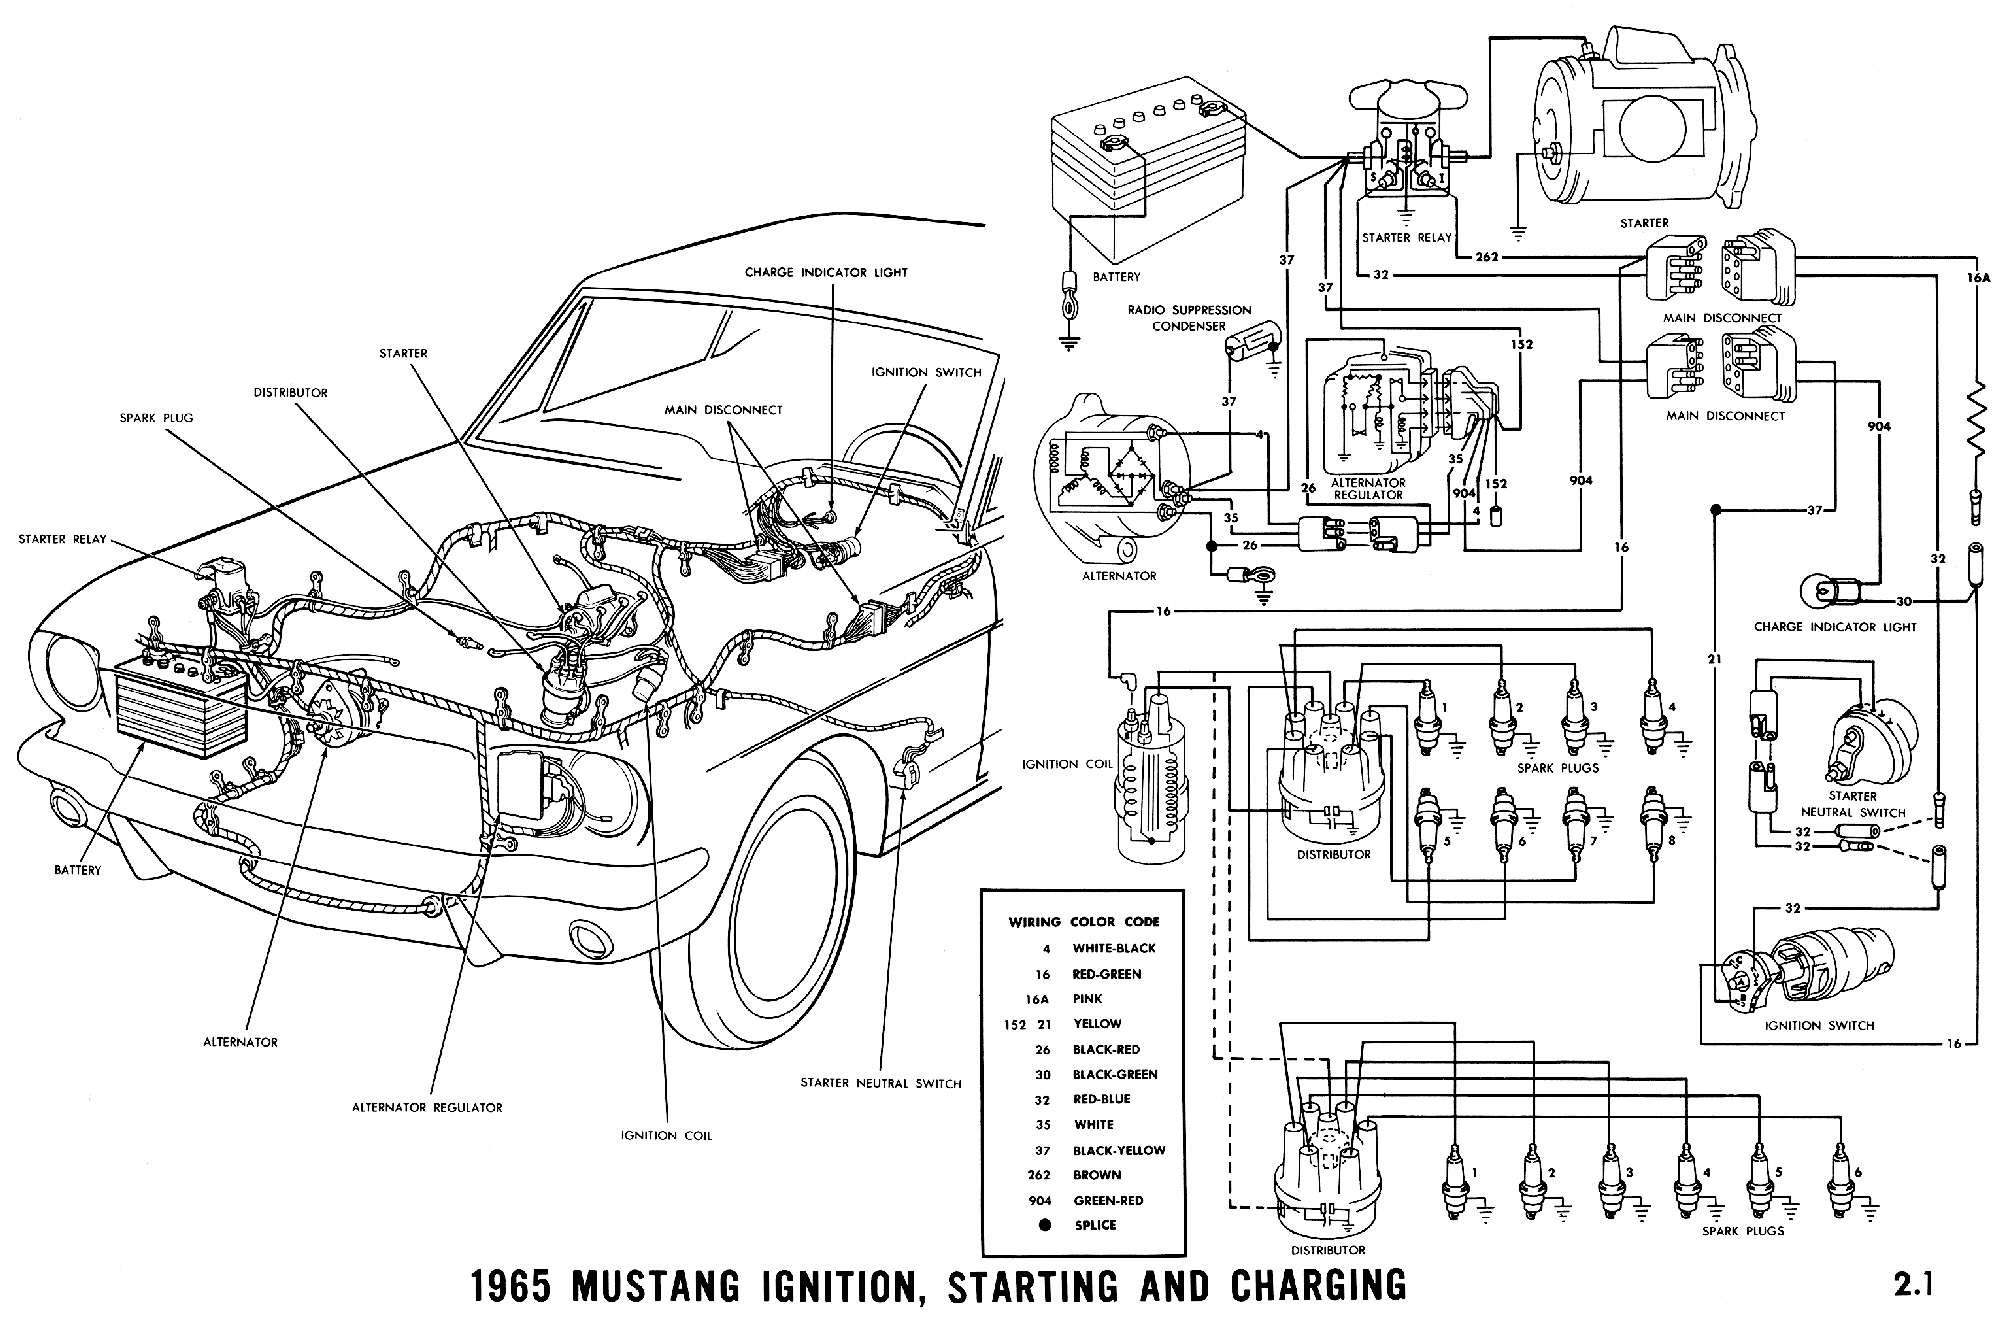 ford 4 6 v8 engine diagram 1965 mustang wiring diagrams average joe  restoration brilliant ford of